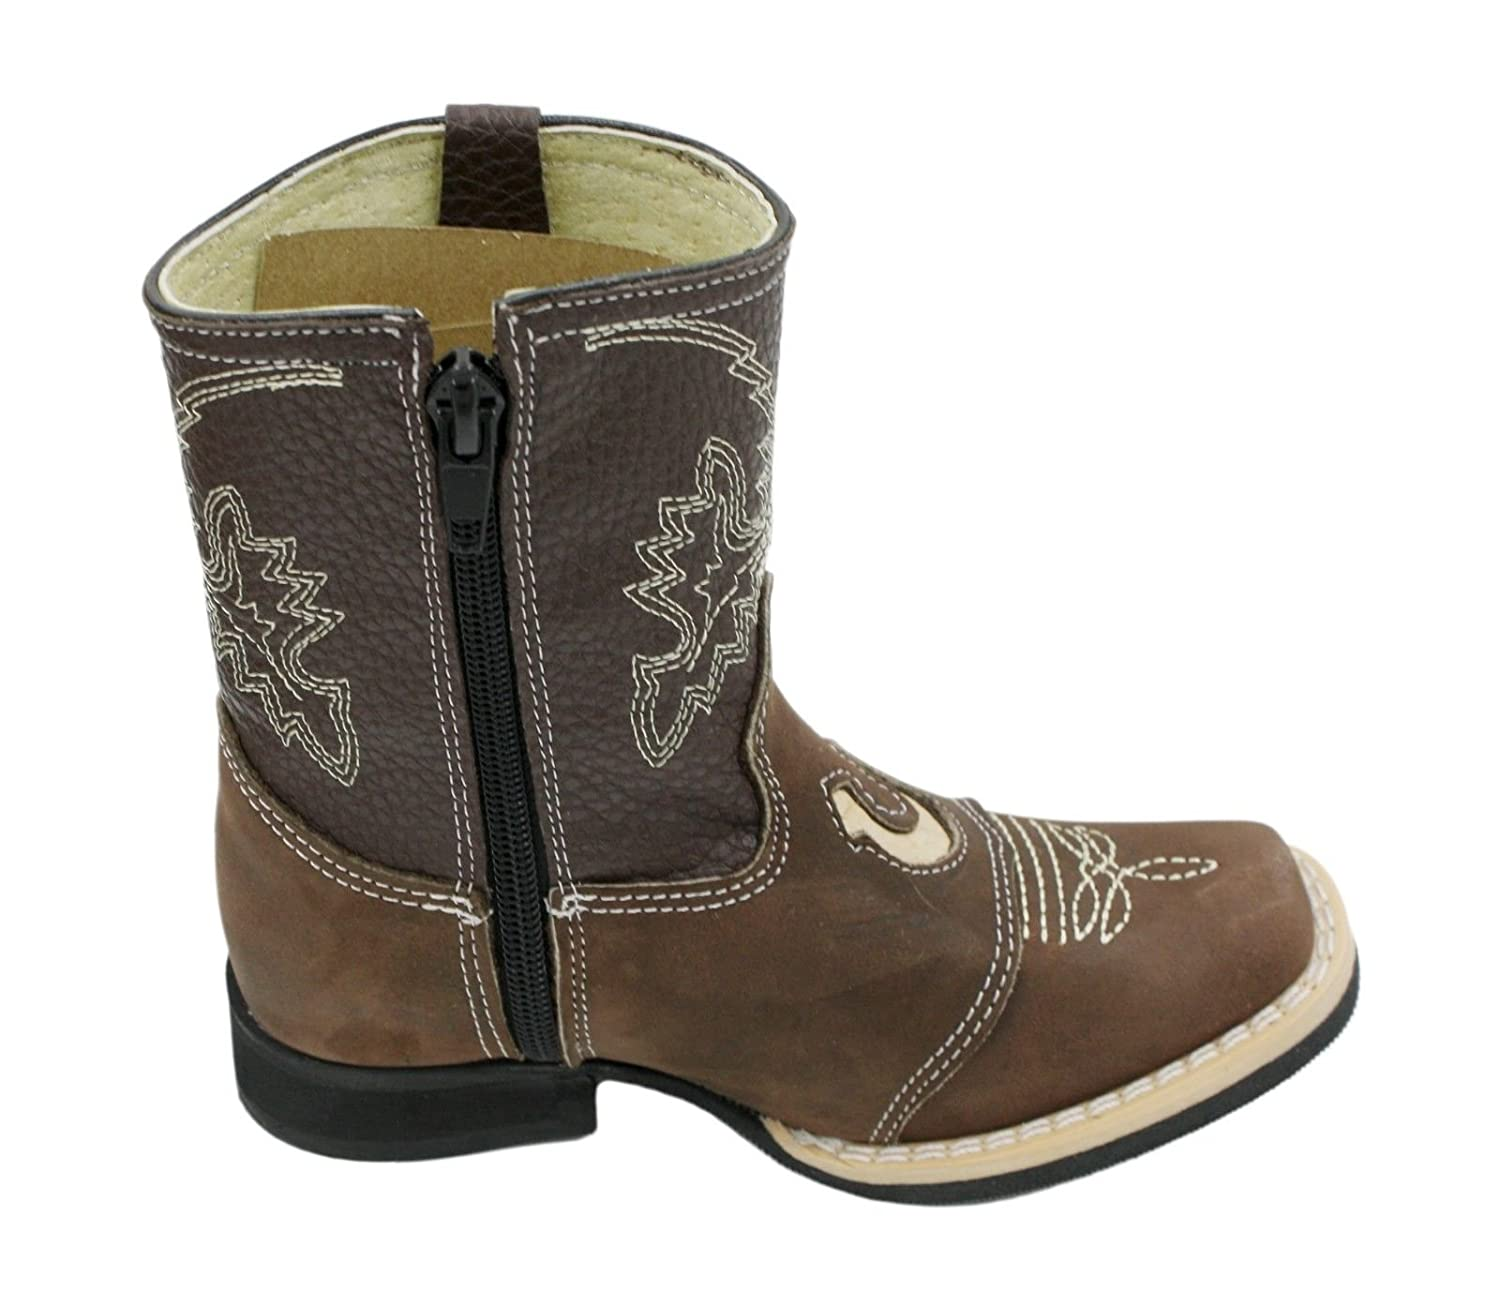 Kids Unisex Genuine Leather Western Rodeo Cowboy Side Zipper Boots Brown-Toddler-7.5